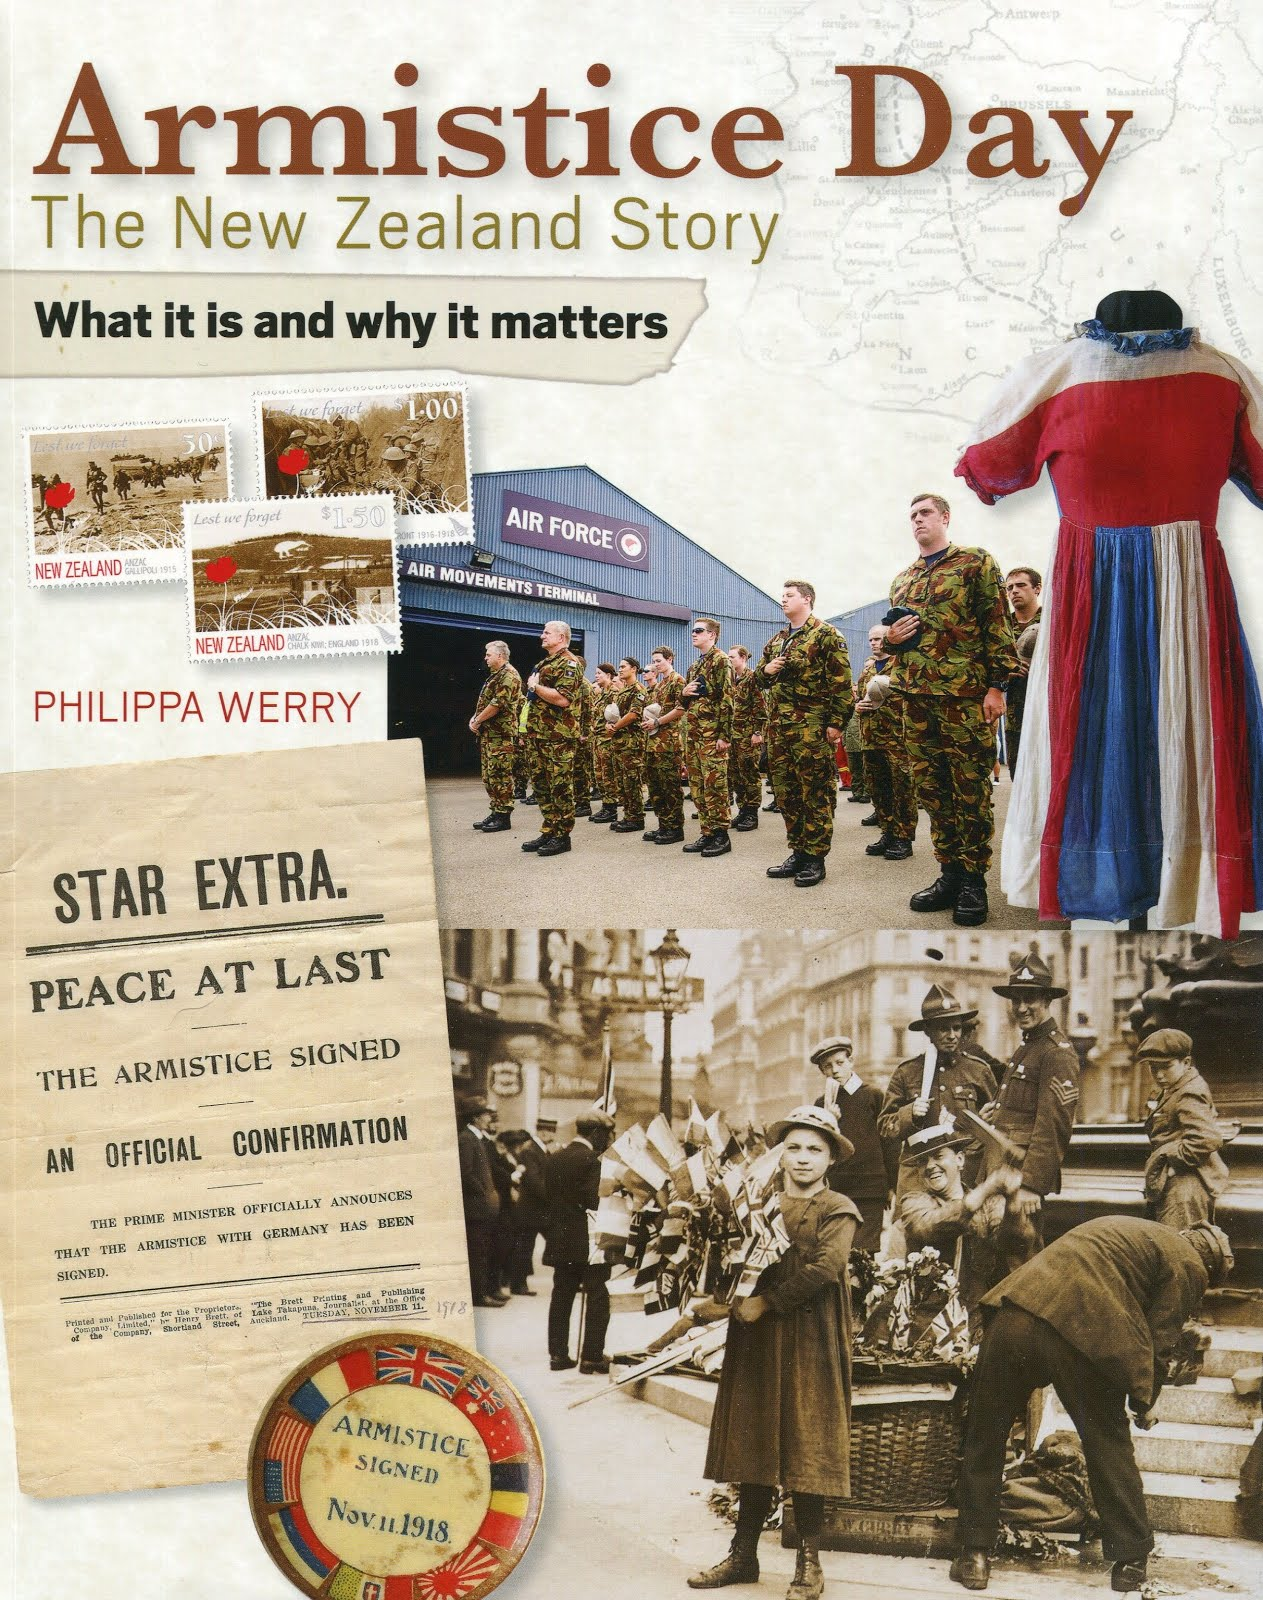 Armistice Day: the New Zealand story by Philippa Werry (New Holland, 2016)